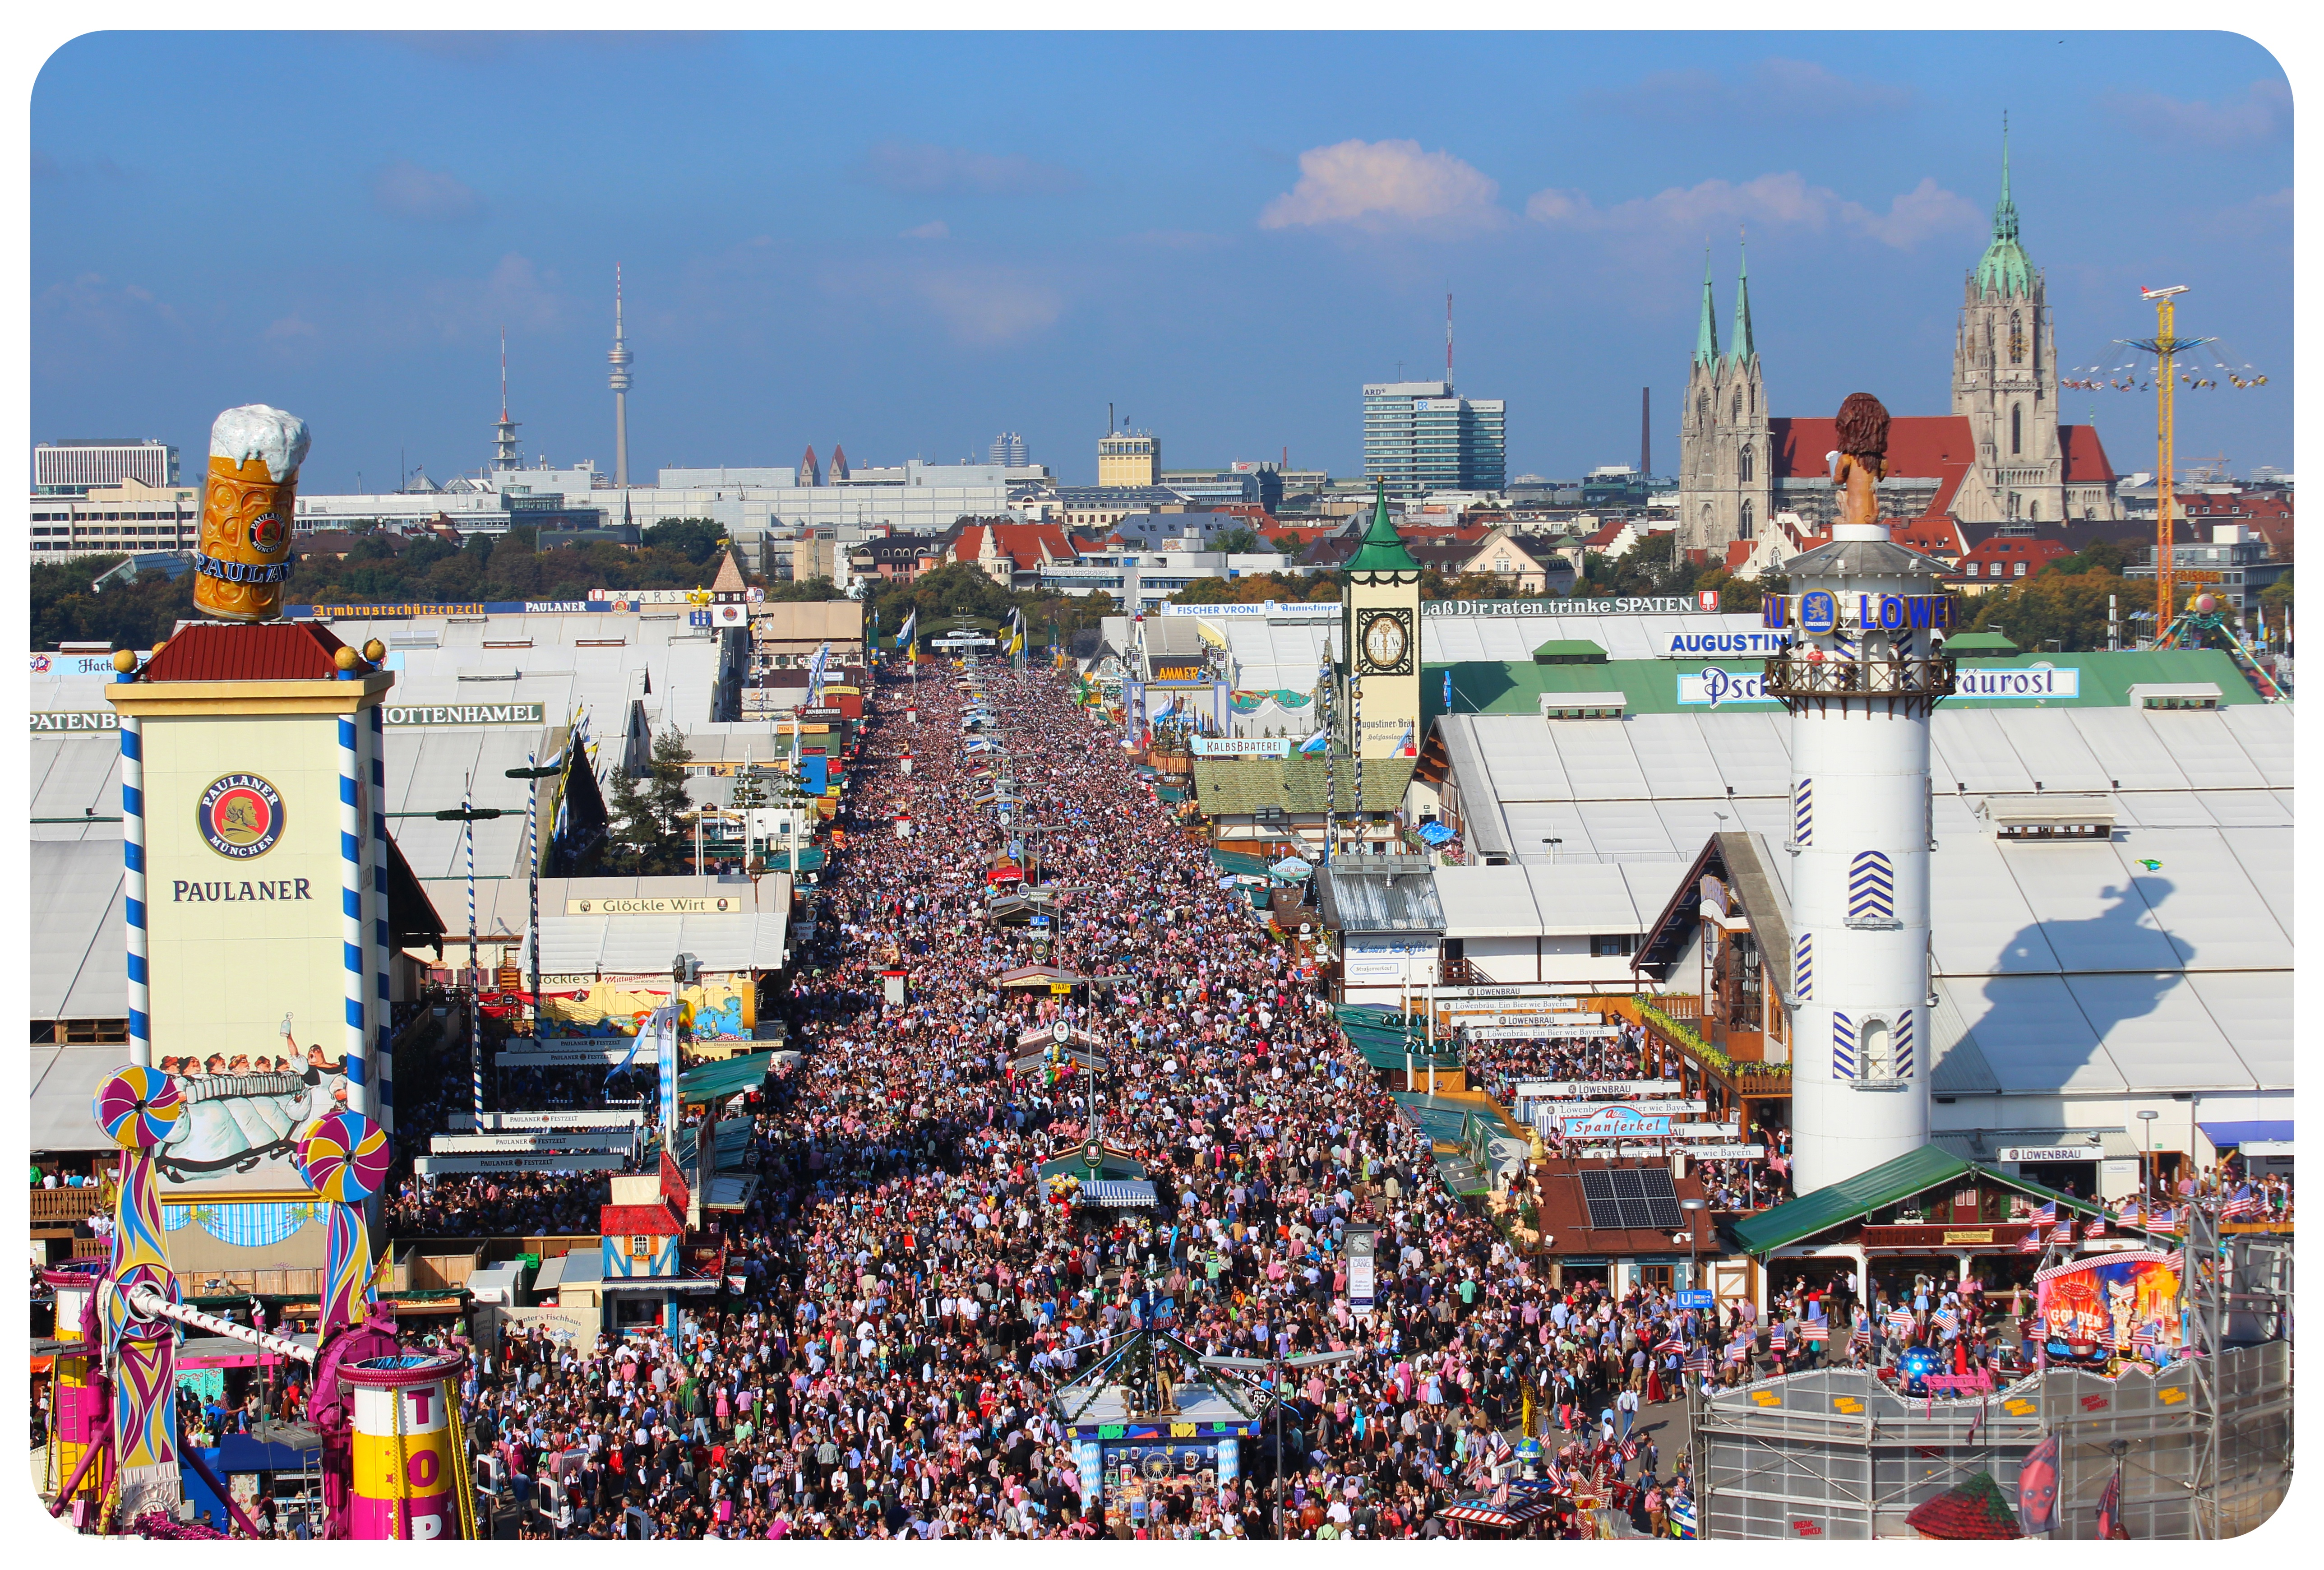 oktoberfest crowds and tents